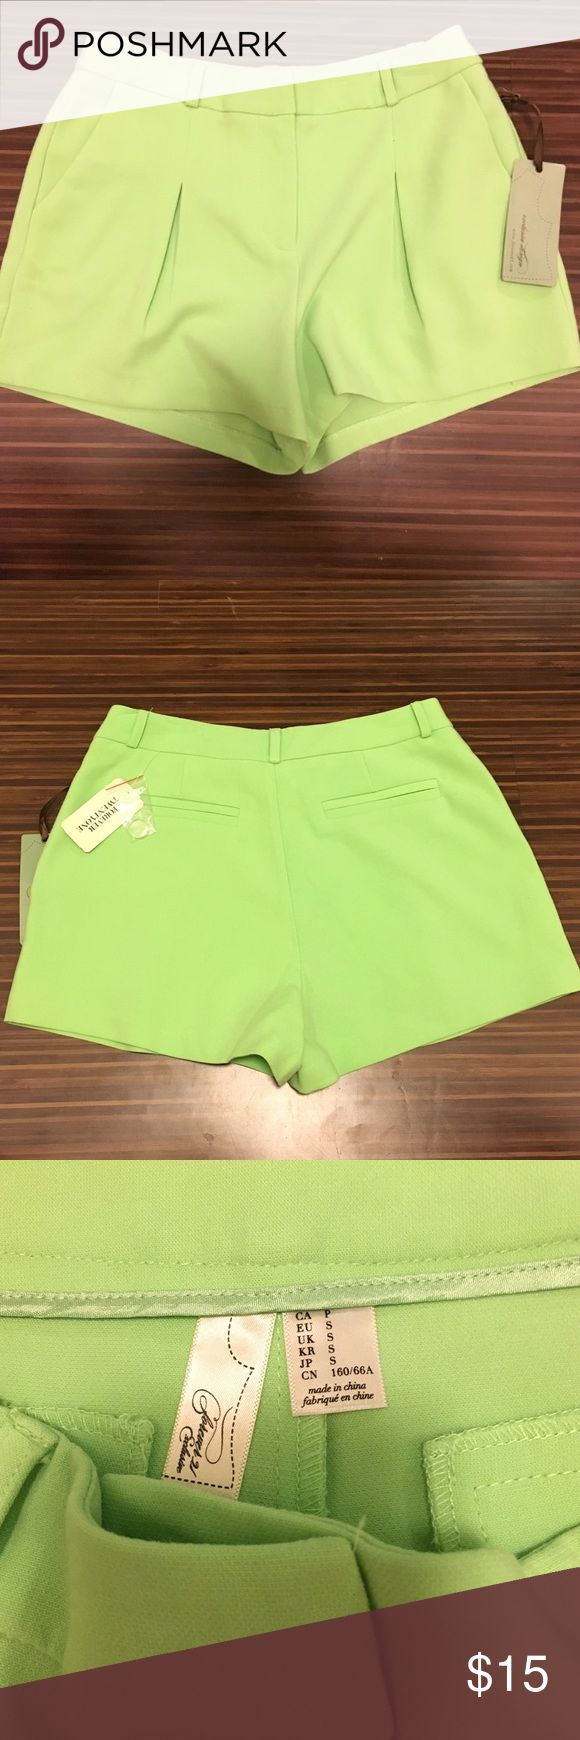 Lime green pleated shorts Like green. Pleated shorts. New with tags. Front and back pockets. Size small. Shorts